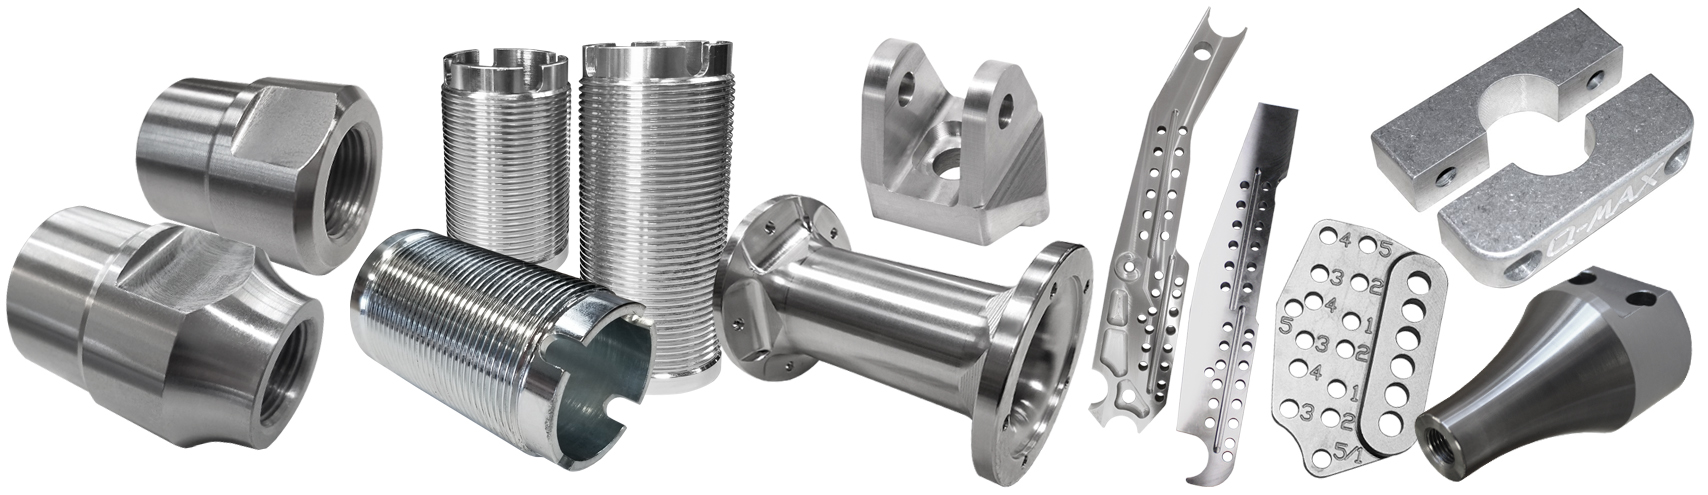 cnc-products-image.jpg